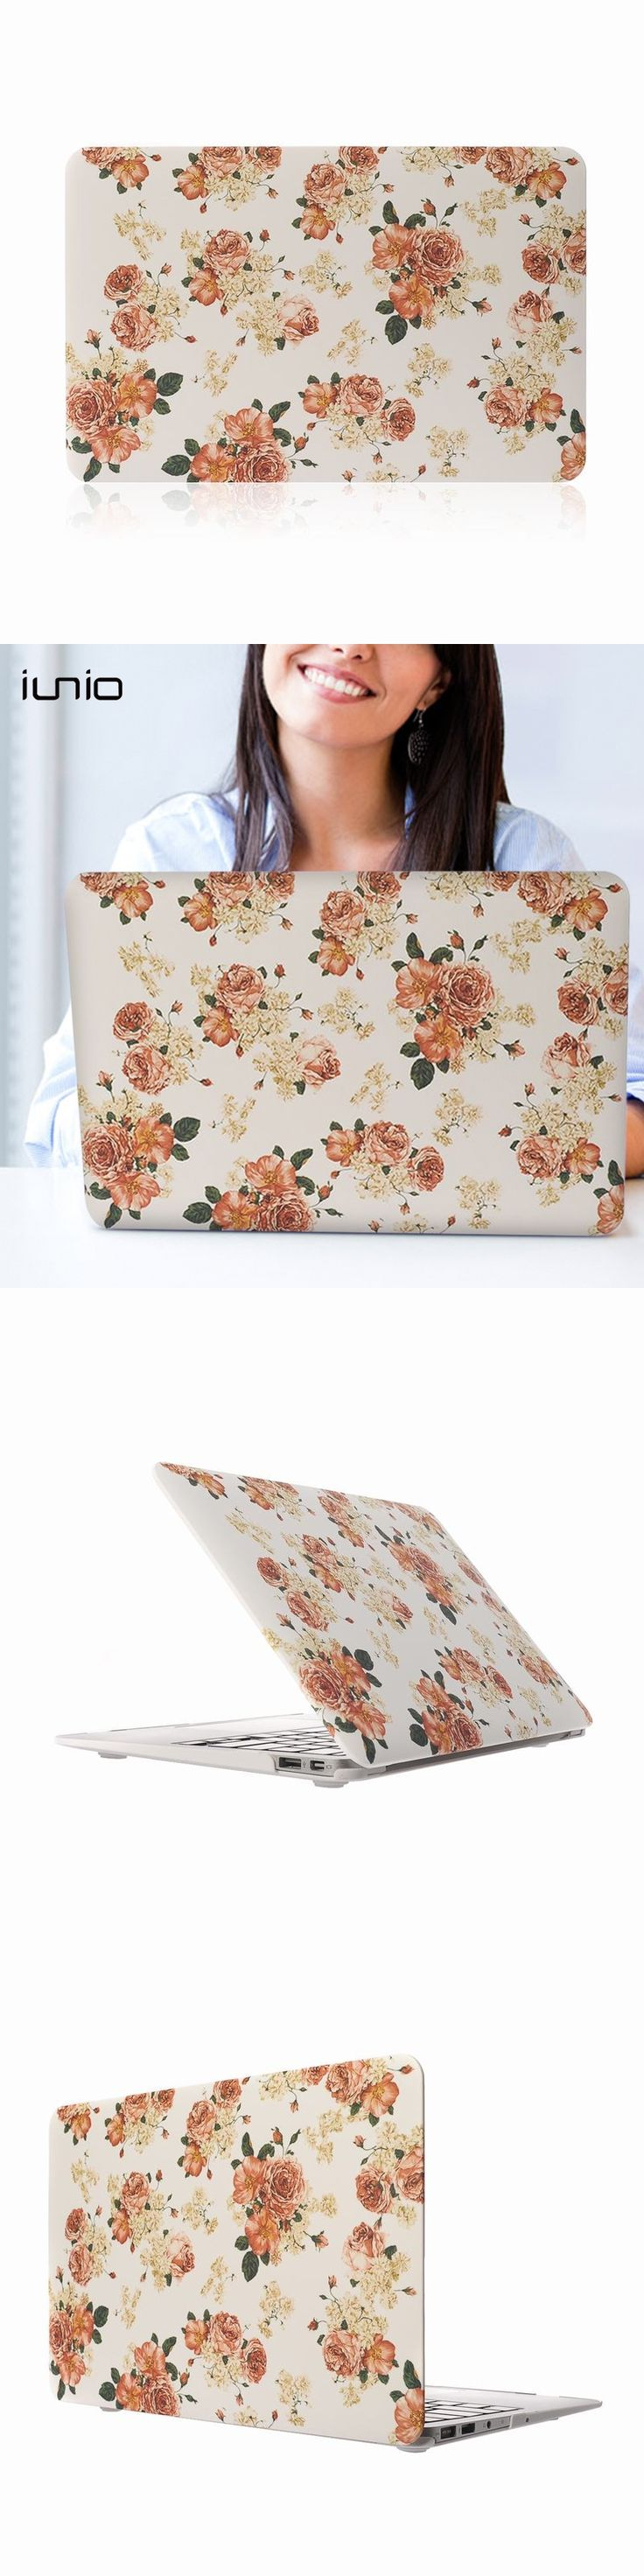 For Macbook Pro Retina 13 Case Print 3D Floral Hard Case For Macbook Pro 13 Fashion Shell Cover For Macbook Air 13.3 Inch Cases